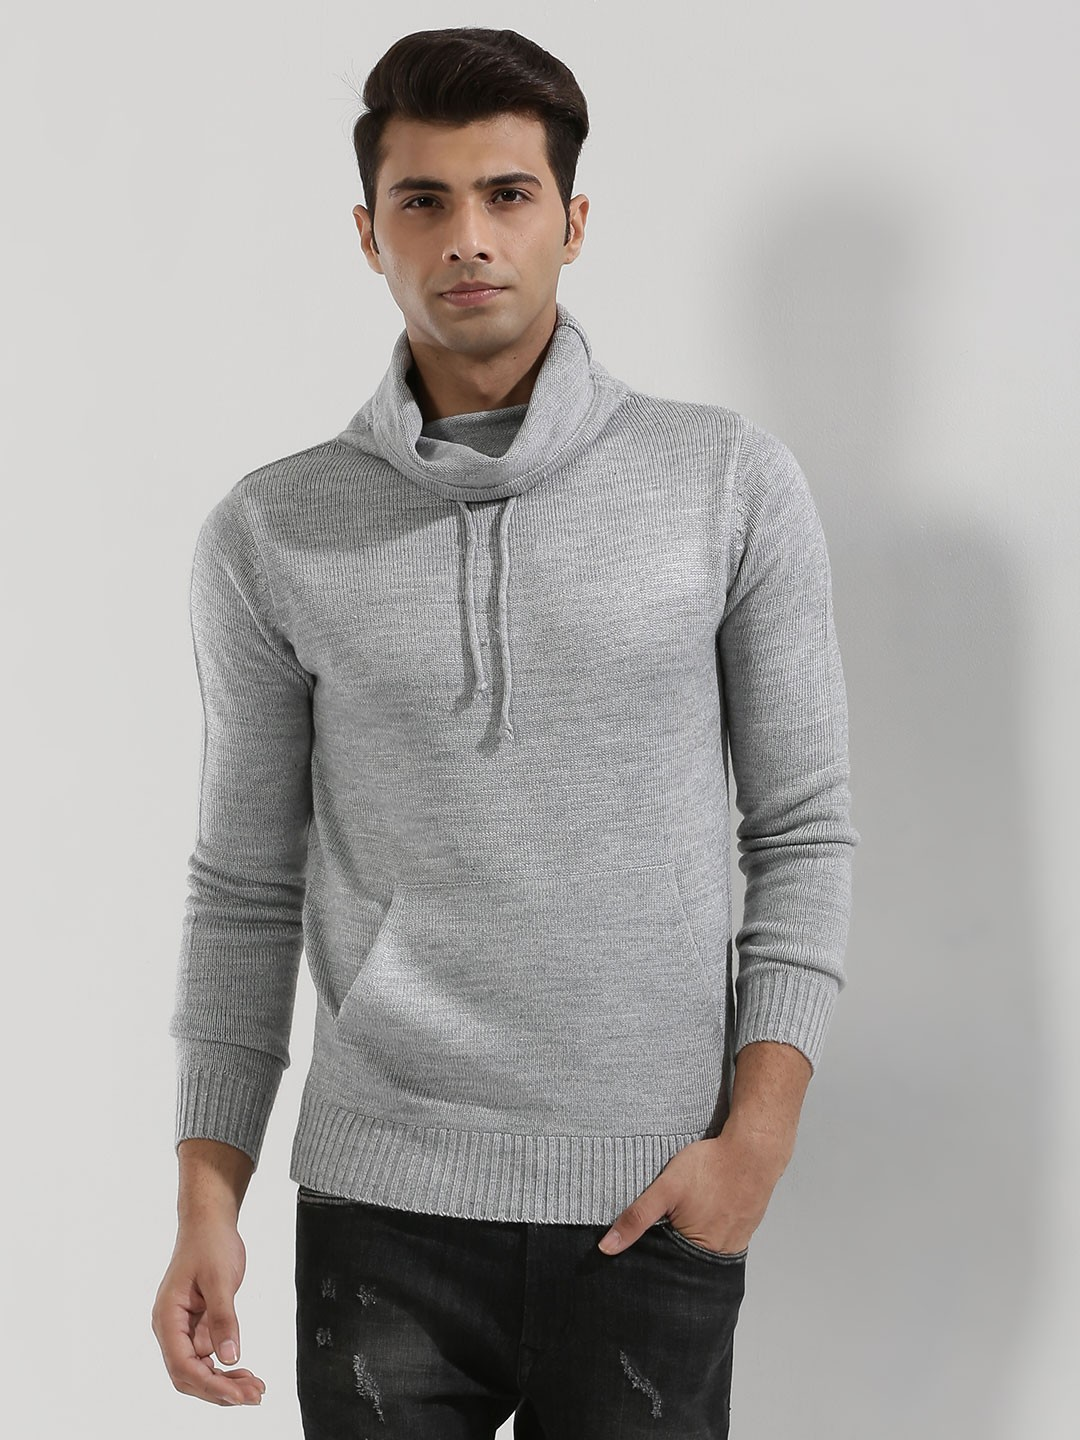 Shop the Latest Collection of Cowl Neck Sweaters for Men Online at puraconga.ml FREE SHIPPING AVAILABLE! Macy's Presents: The Edit - A curated mix of fashion and inspiration Check It Out Free Shipping with $49 purchase + Free Store Pickup.